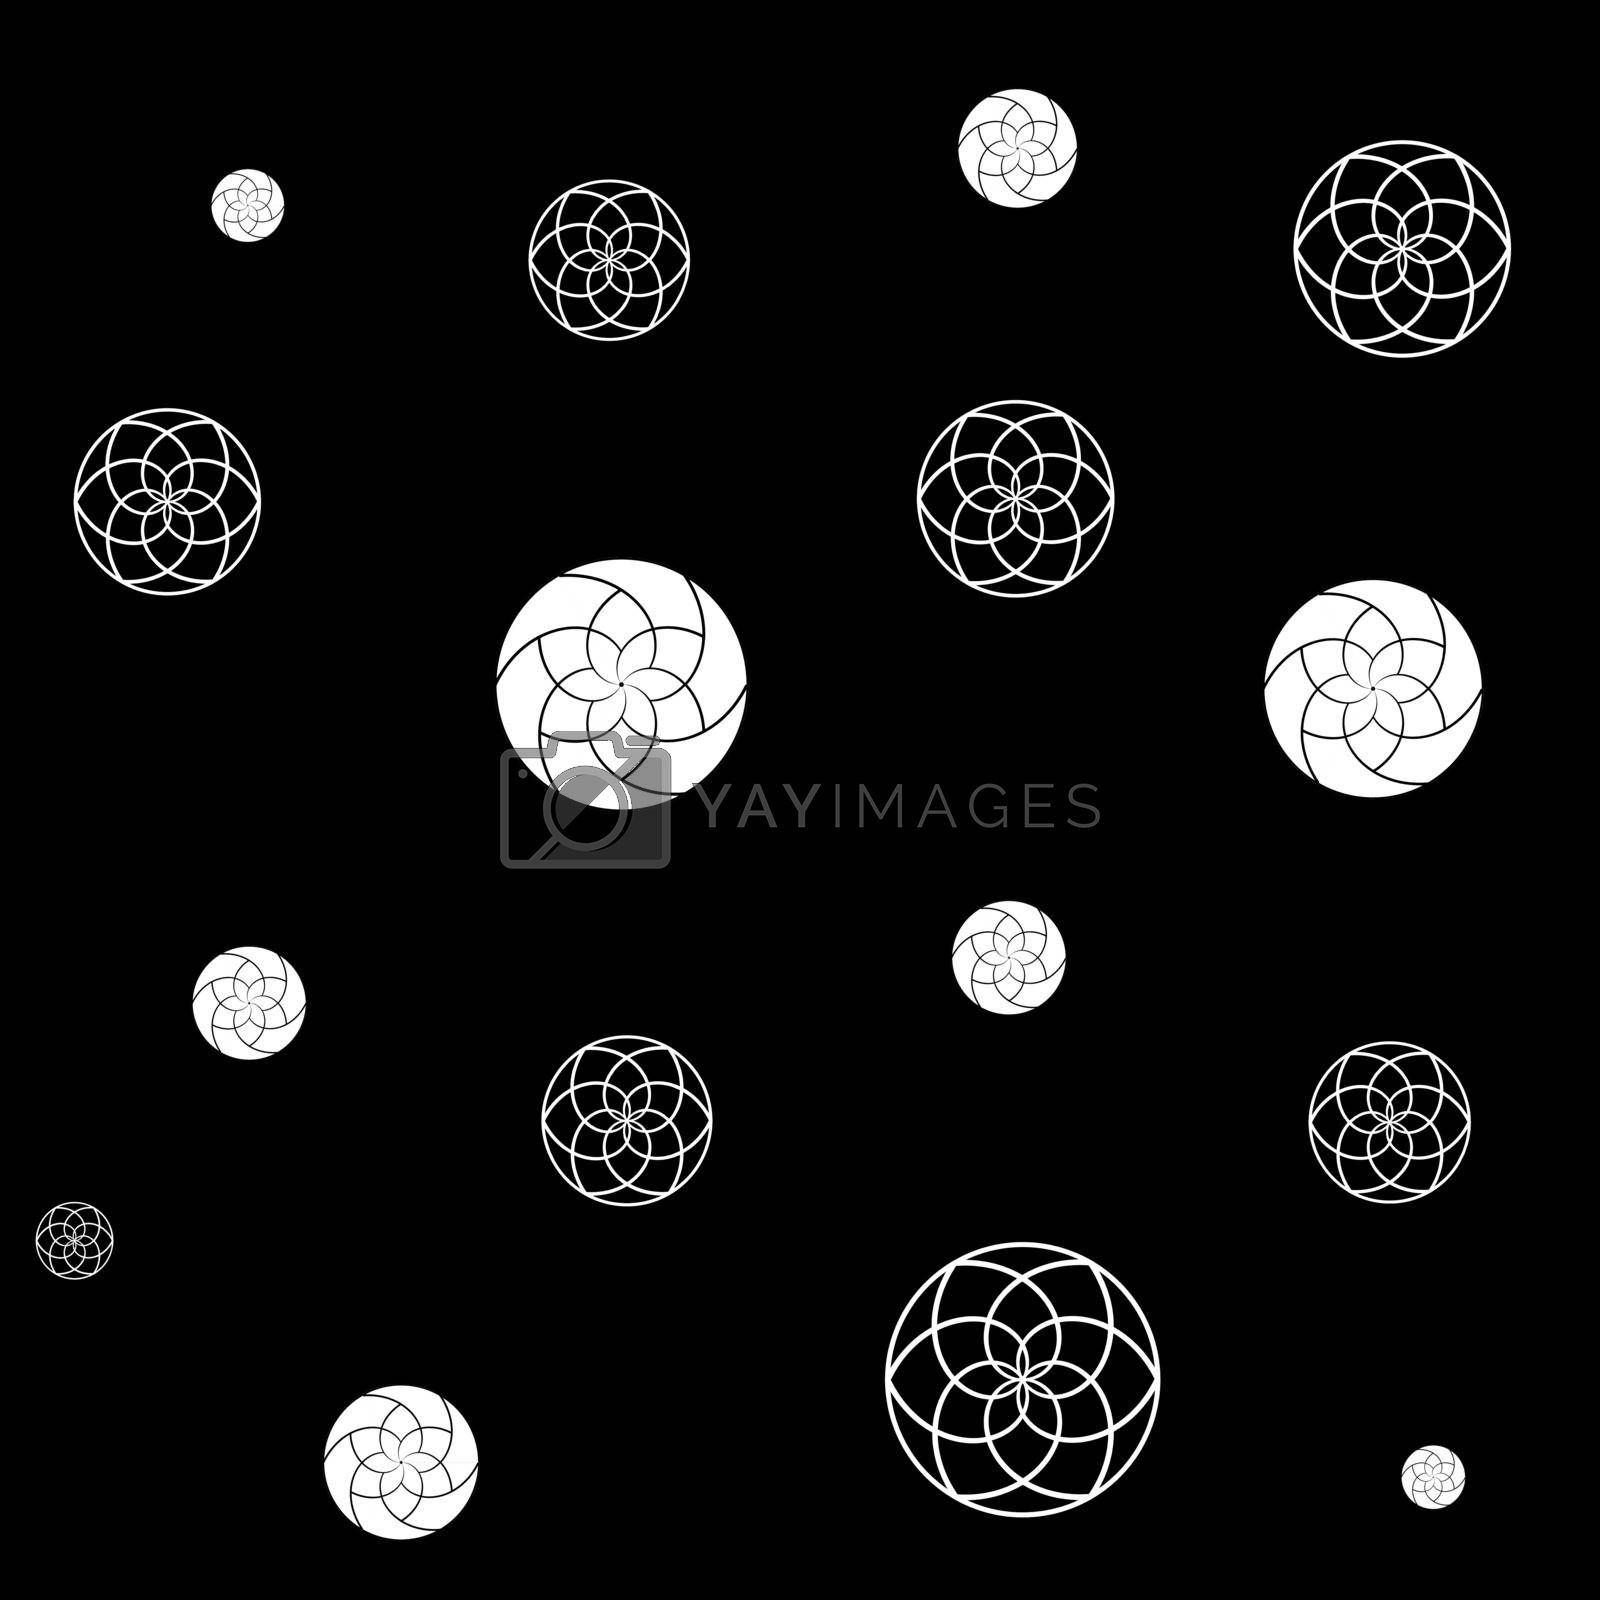 Circles geometric pattern with white abstract flowers on black background